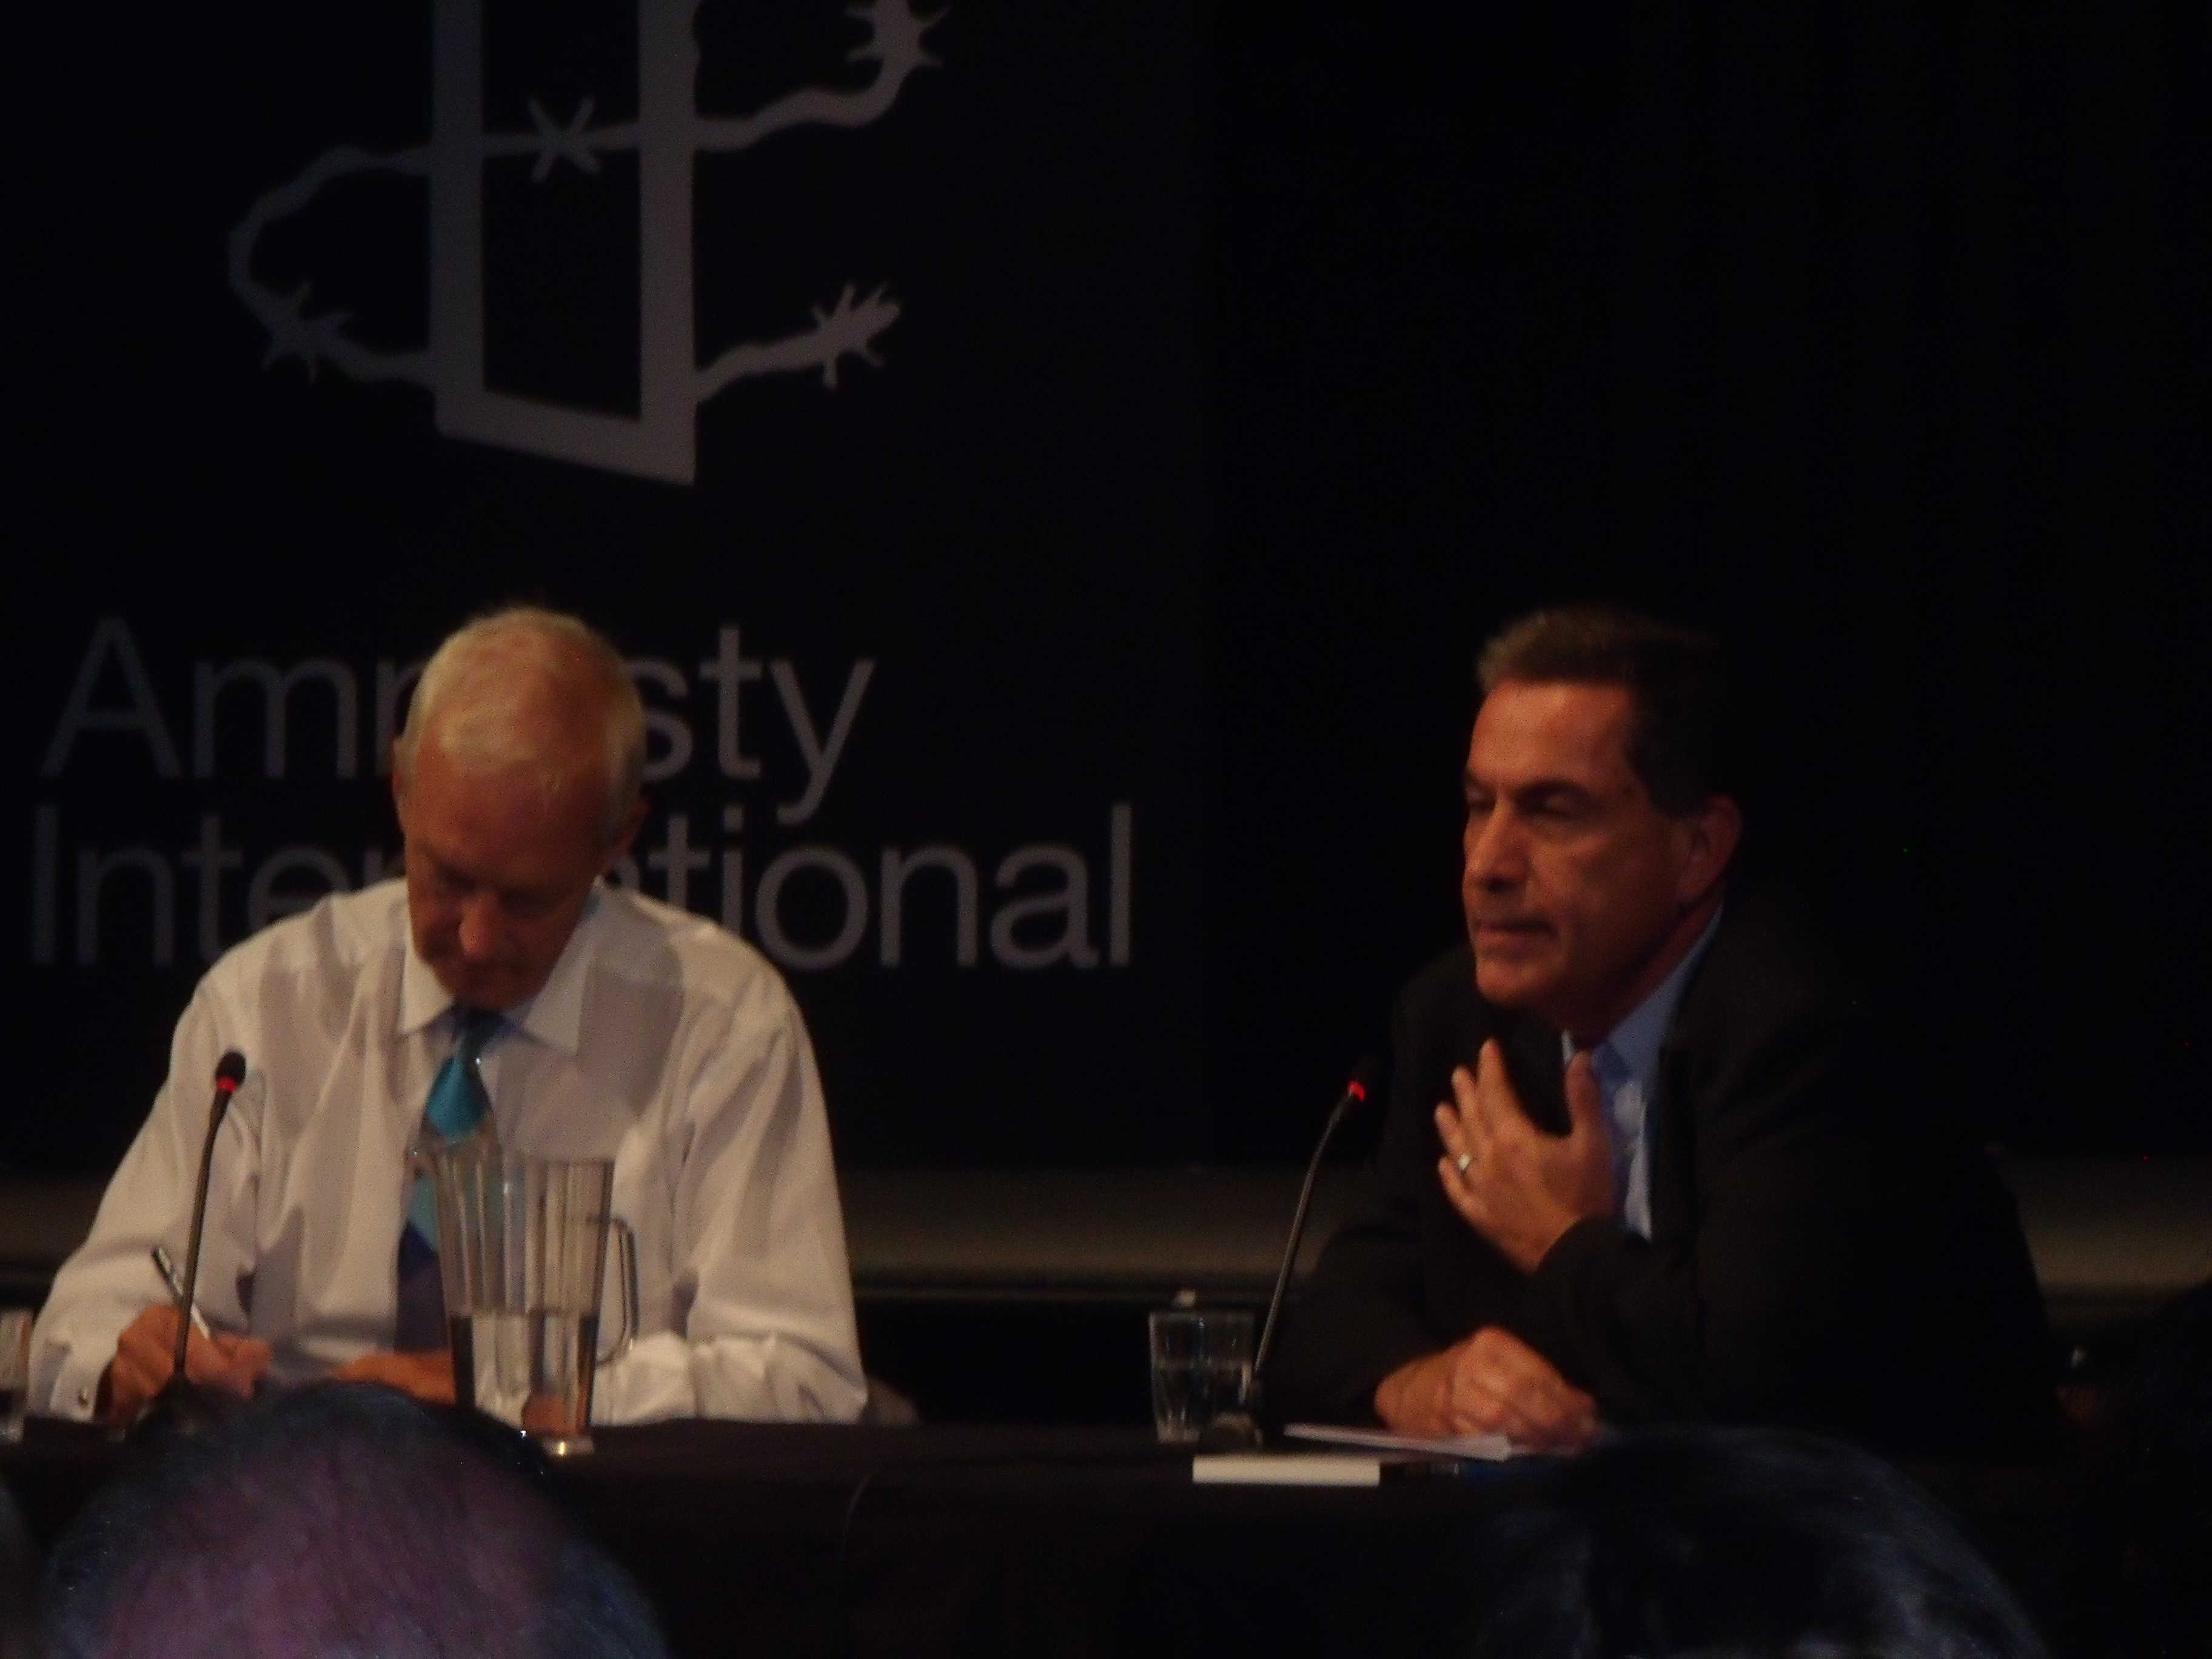 I went to hear Gideon Levy talk at Amnesty in London last night.